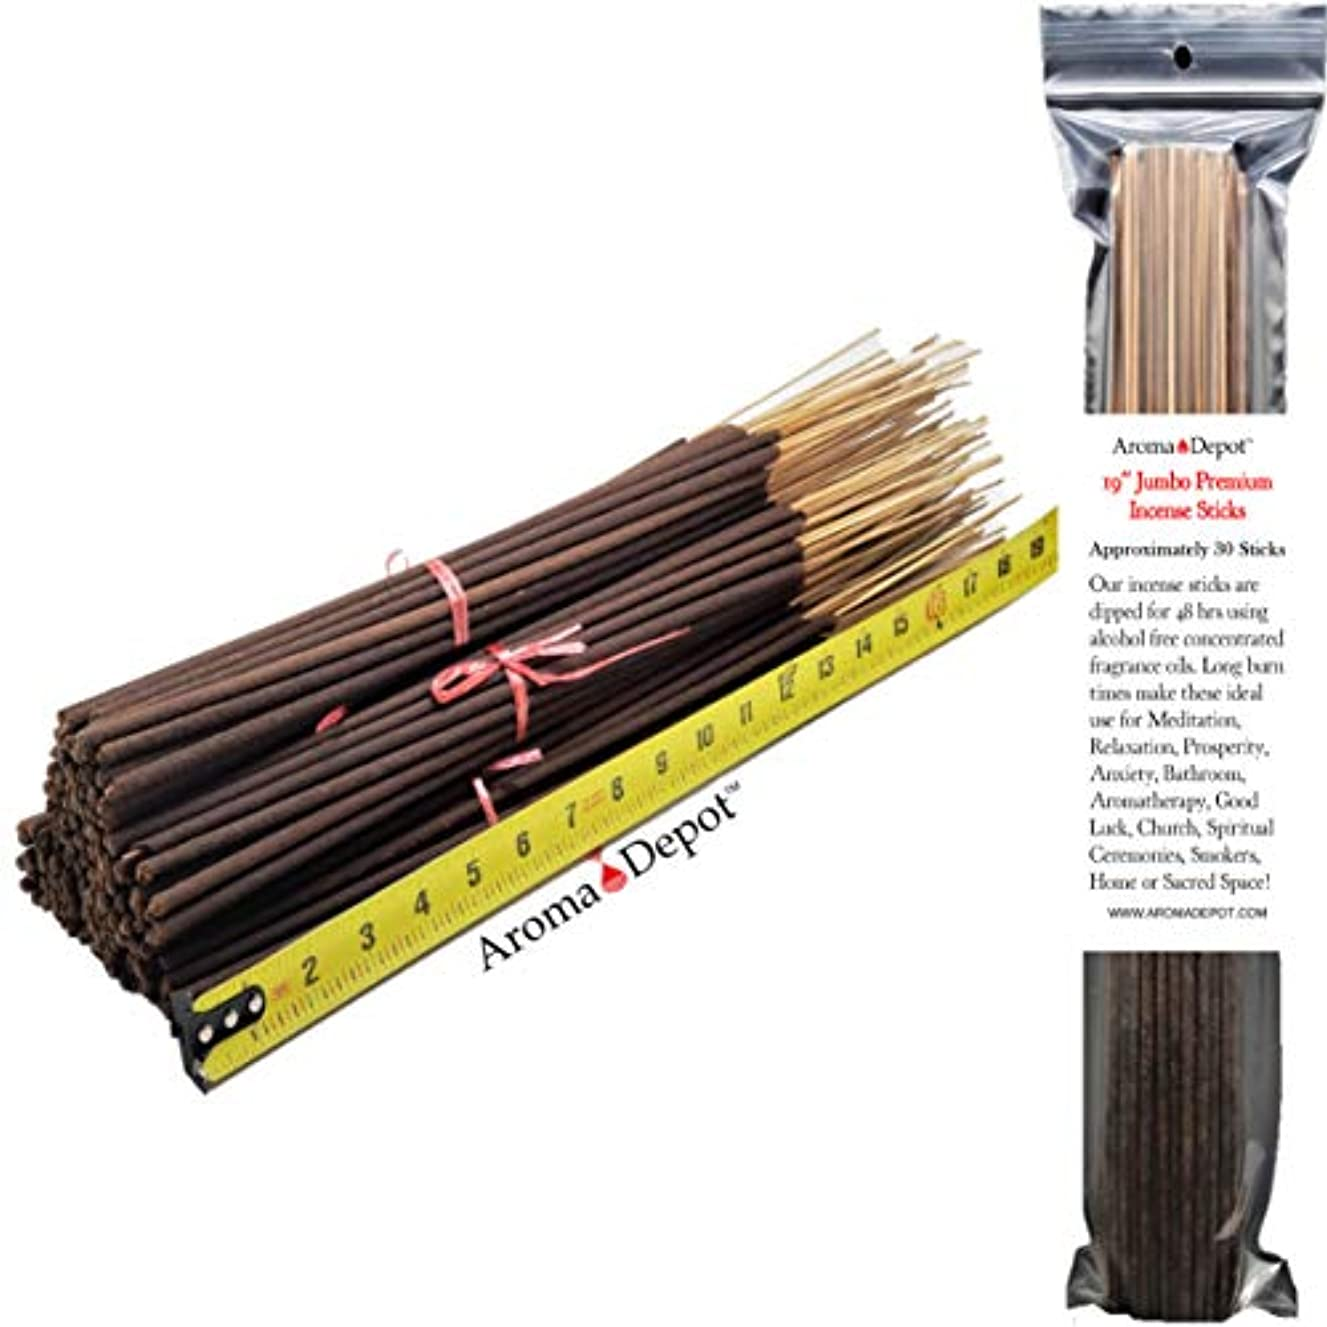 Aroma Depot 19'' Butt Naked Most Exotic Incense Sticks. Approx 27 to 30 Sticks Per Bundle, Length - 19 Inch, Each Natural Stick Burns for 3 to 4 Hours Each. Long Lasting. Guarantee 100% Pure